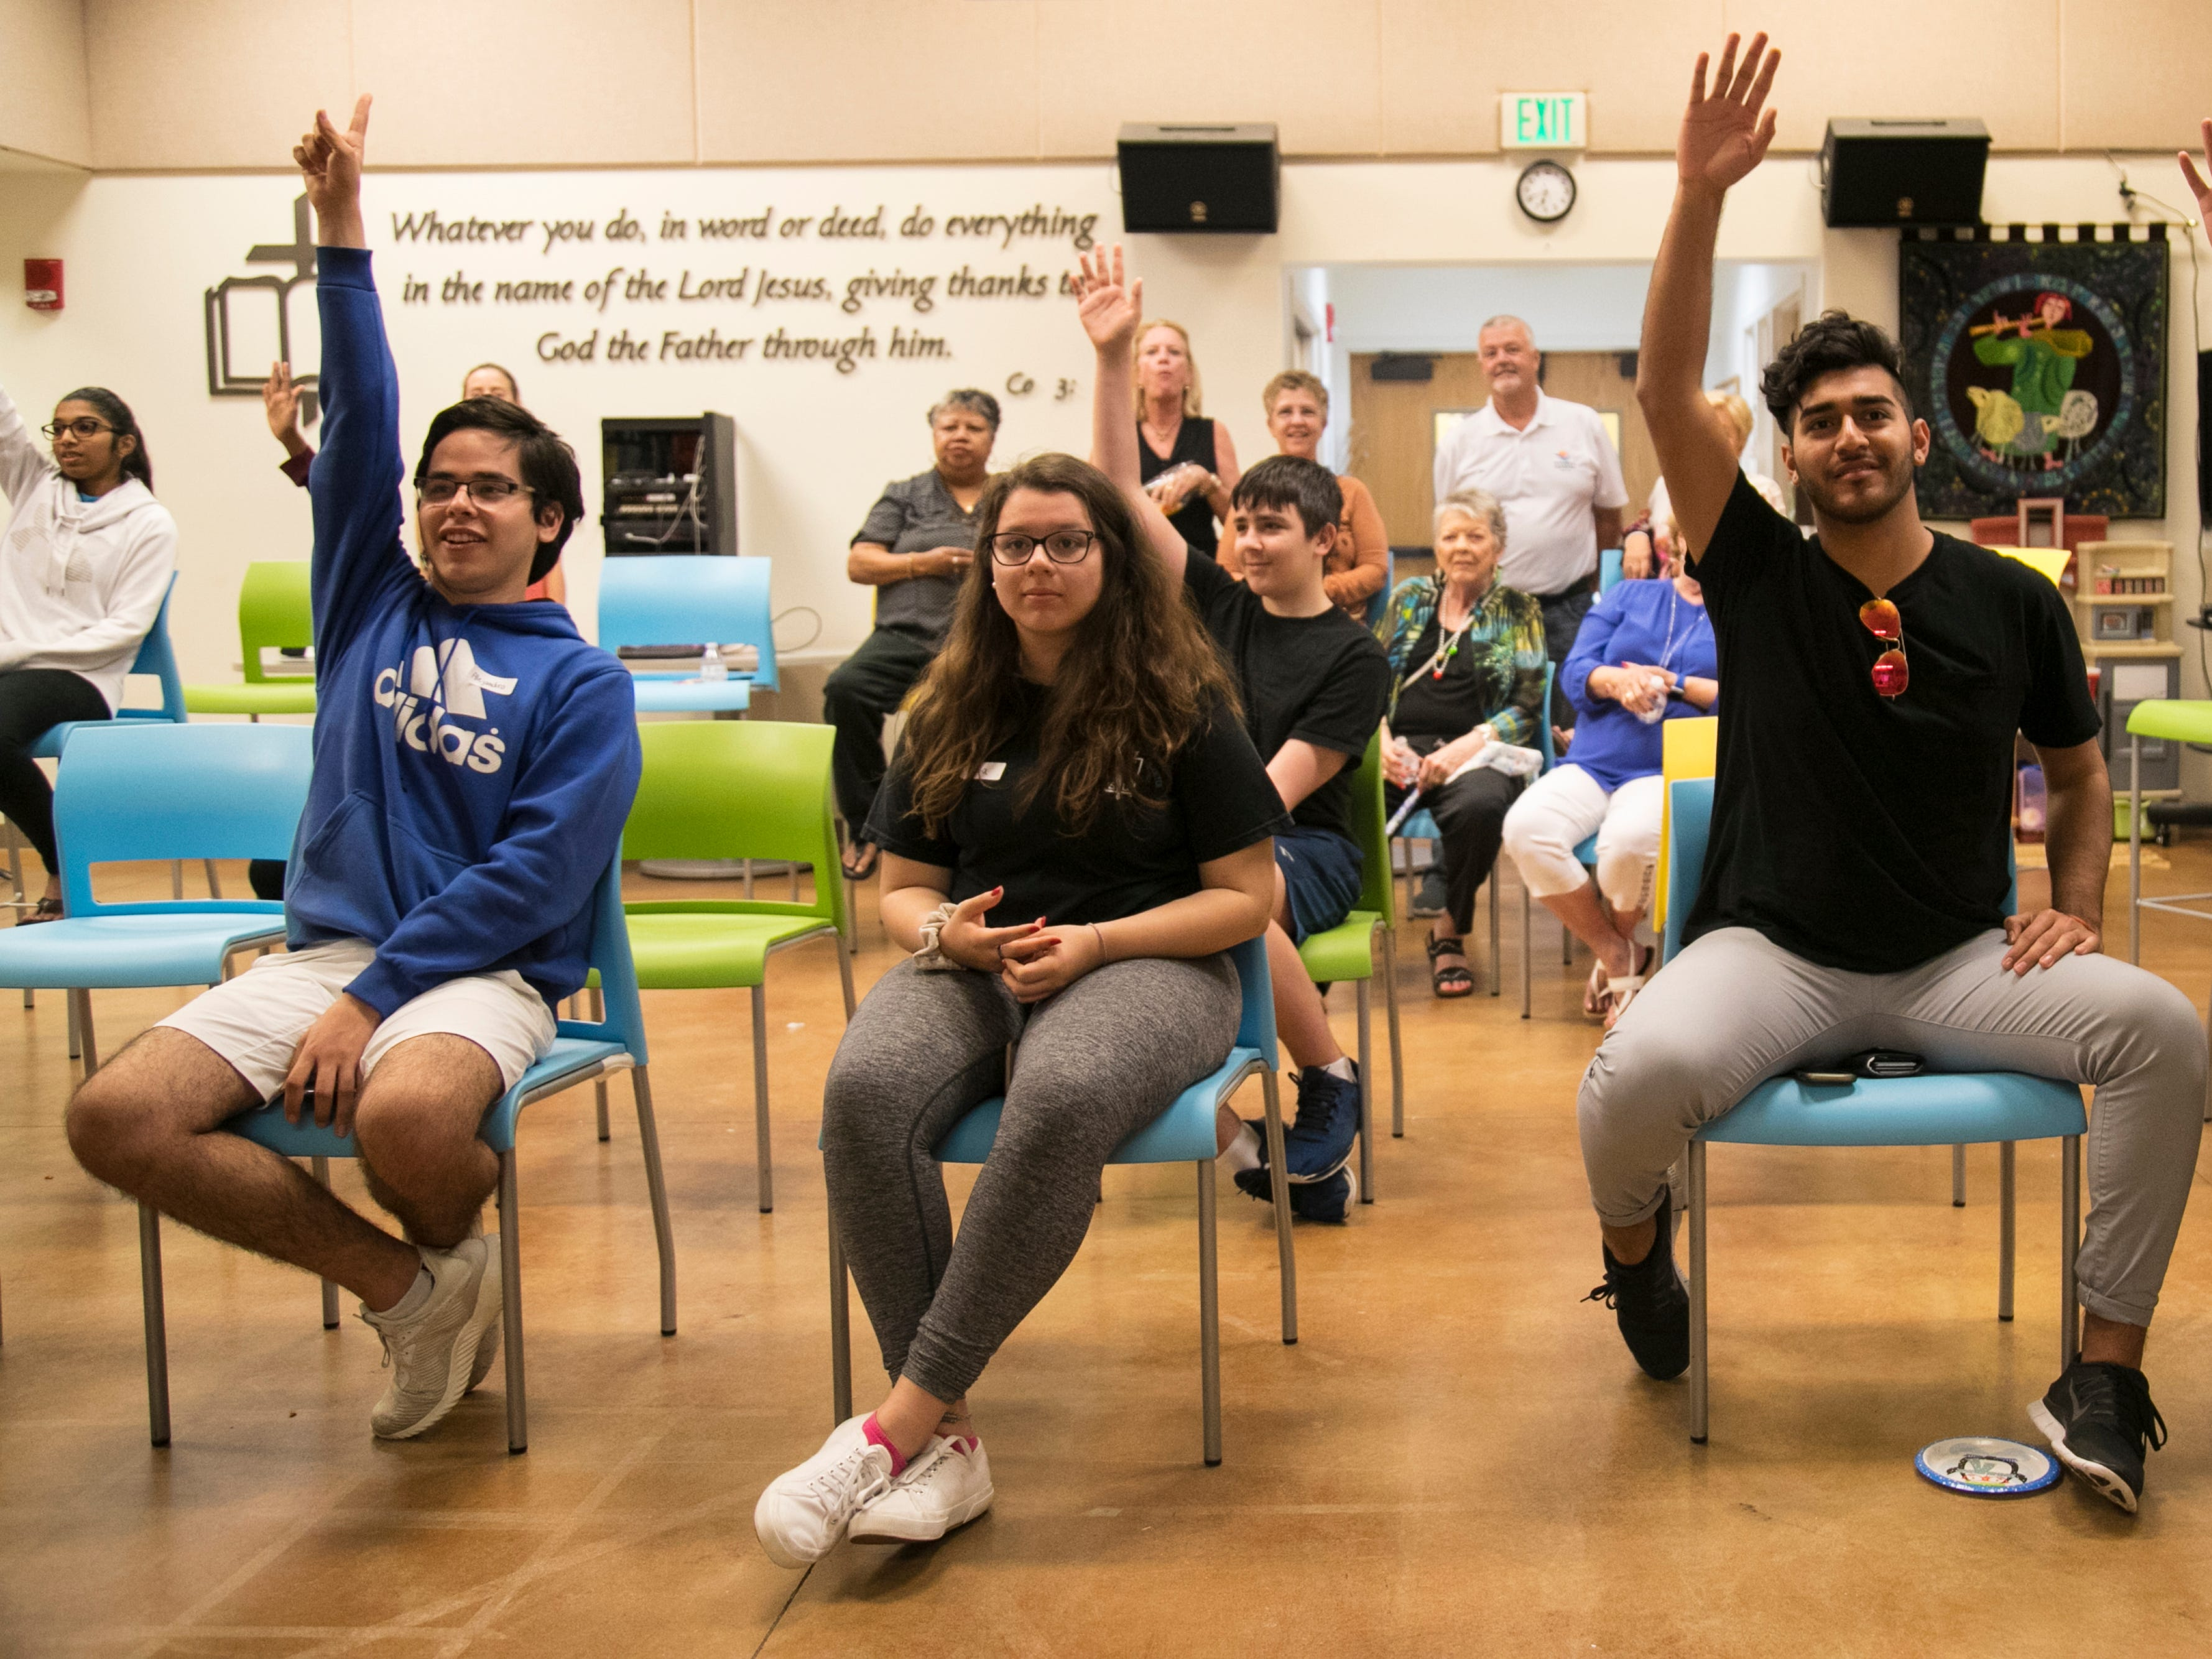 Alejandro Hernandez, left, Lisa Palamo, Marcos Damian-Noyola and Bryan Estrada, right, were among the teens and adults who came to Anna Barry's trivia fundraiser for the Student Alliance on Mental Illness in December 2018 in Naples.